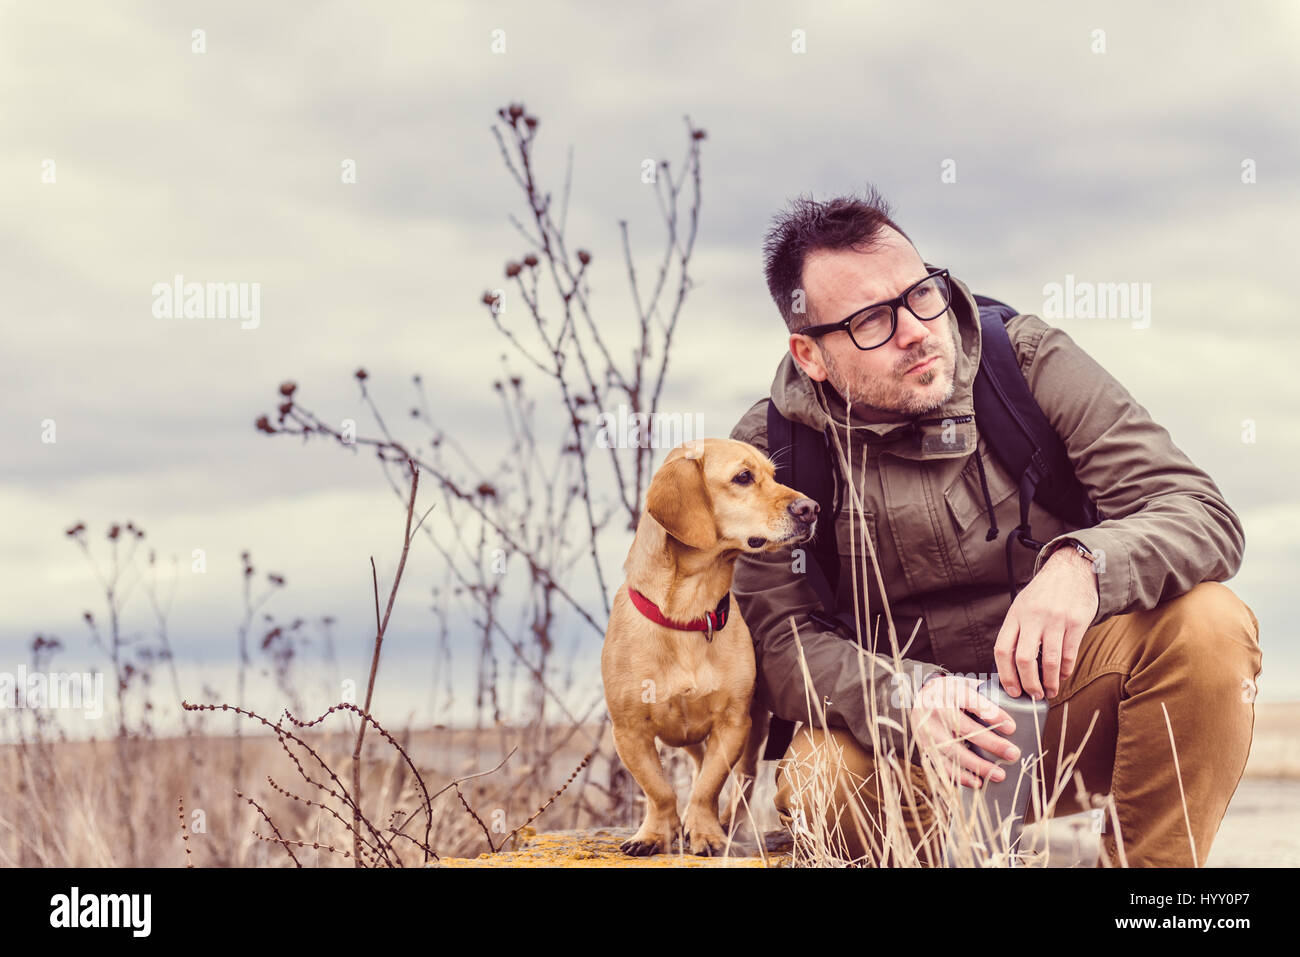 Hiker and dog resting on old brick wall - Stock Image